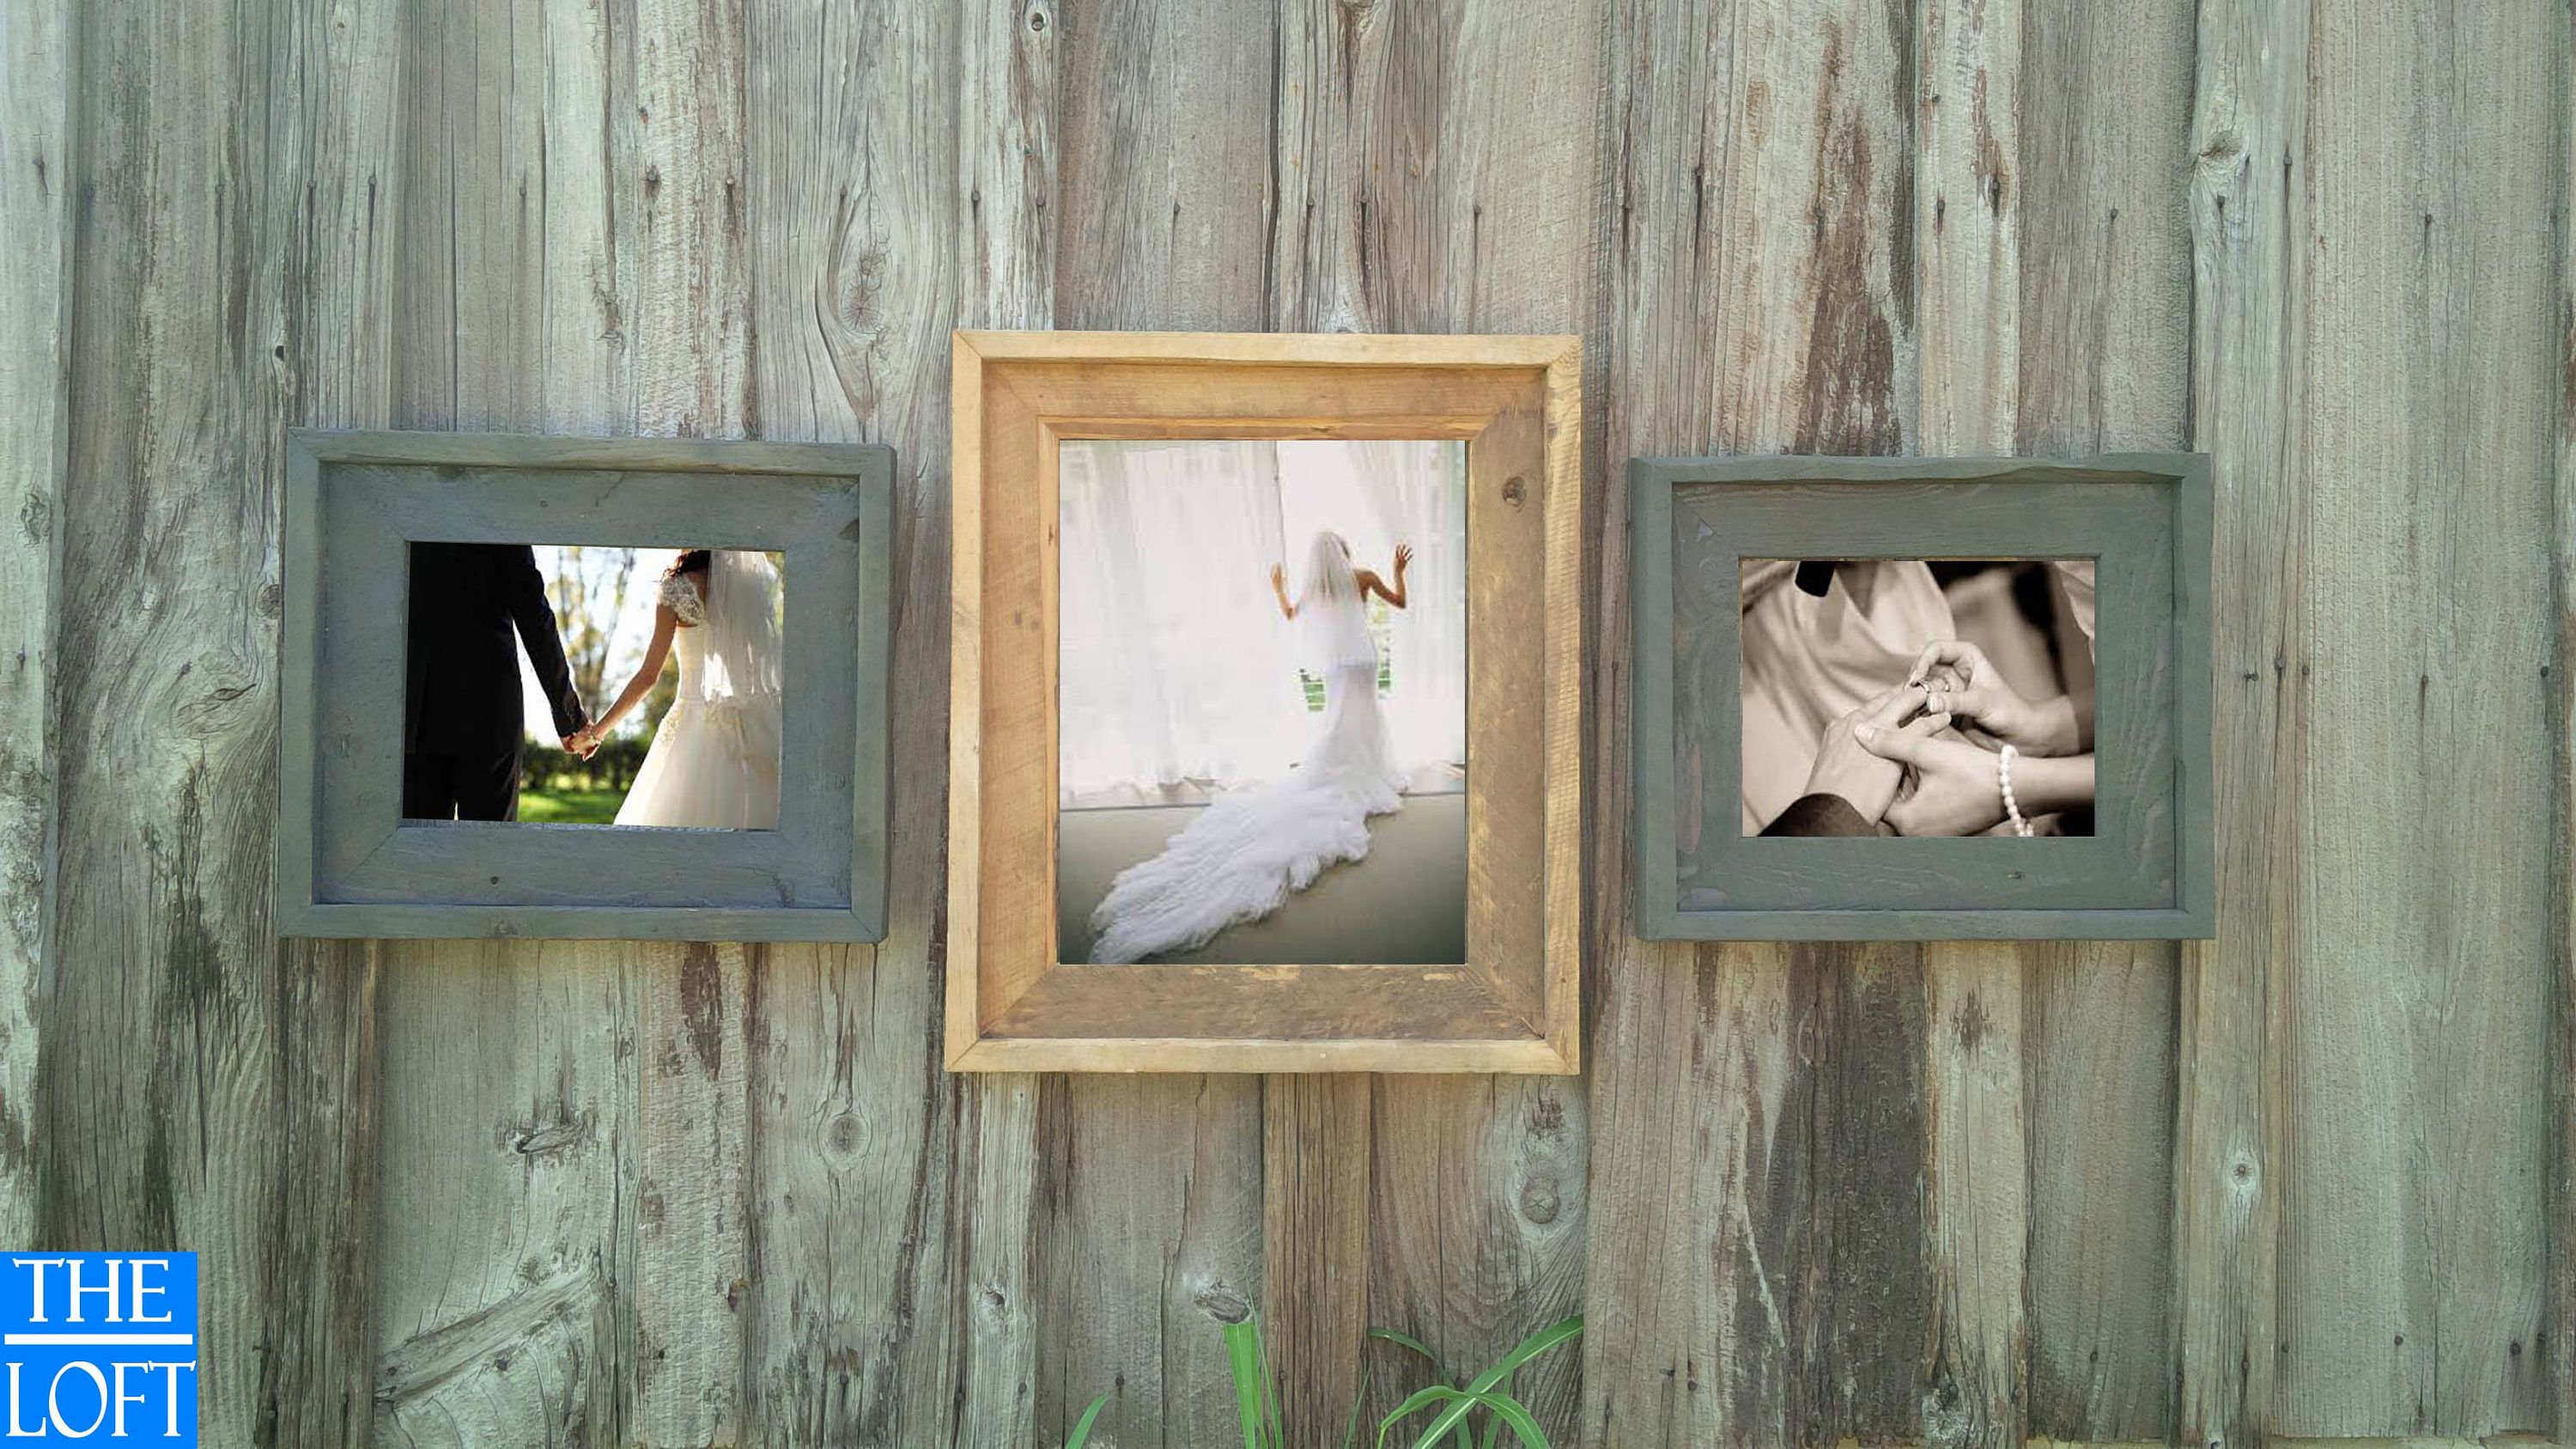 Gallery Wall All Finishes Includes 16x20 Two 11x14 Frames The Loft Signature Quality Handmade Rustic Barn Wo Barn Wood Frames Rustic Loft Rustic Frames